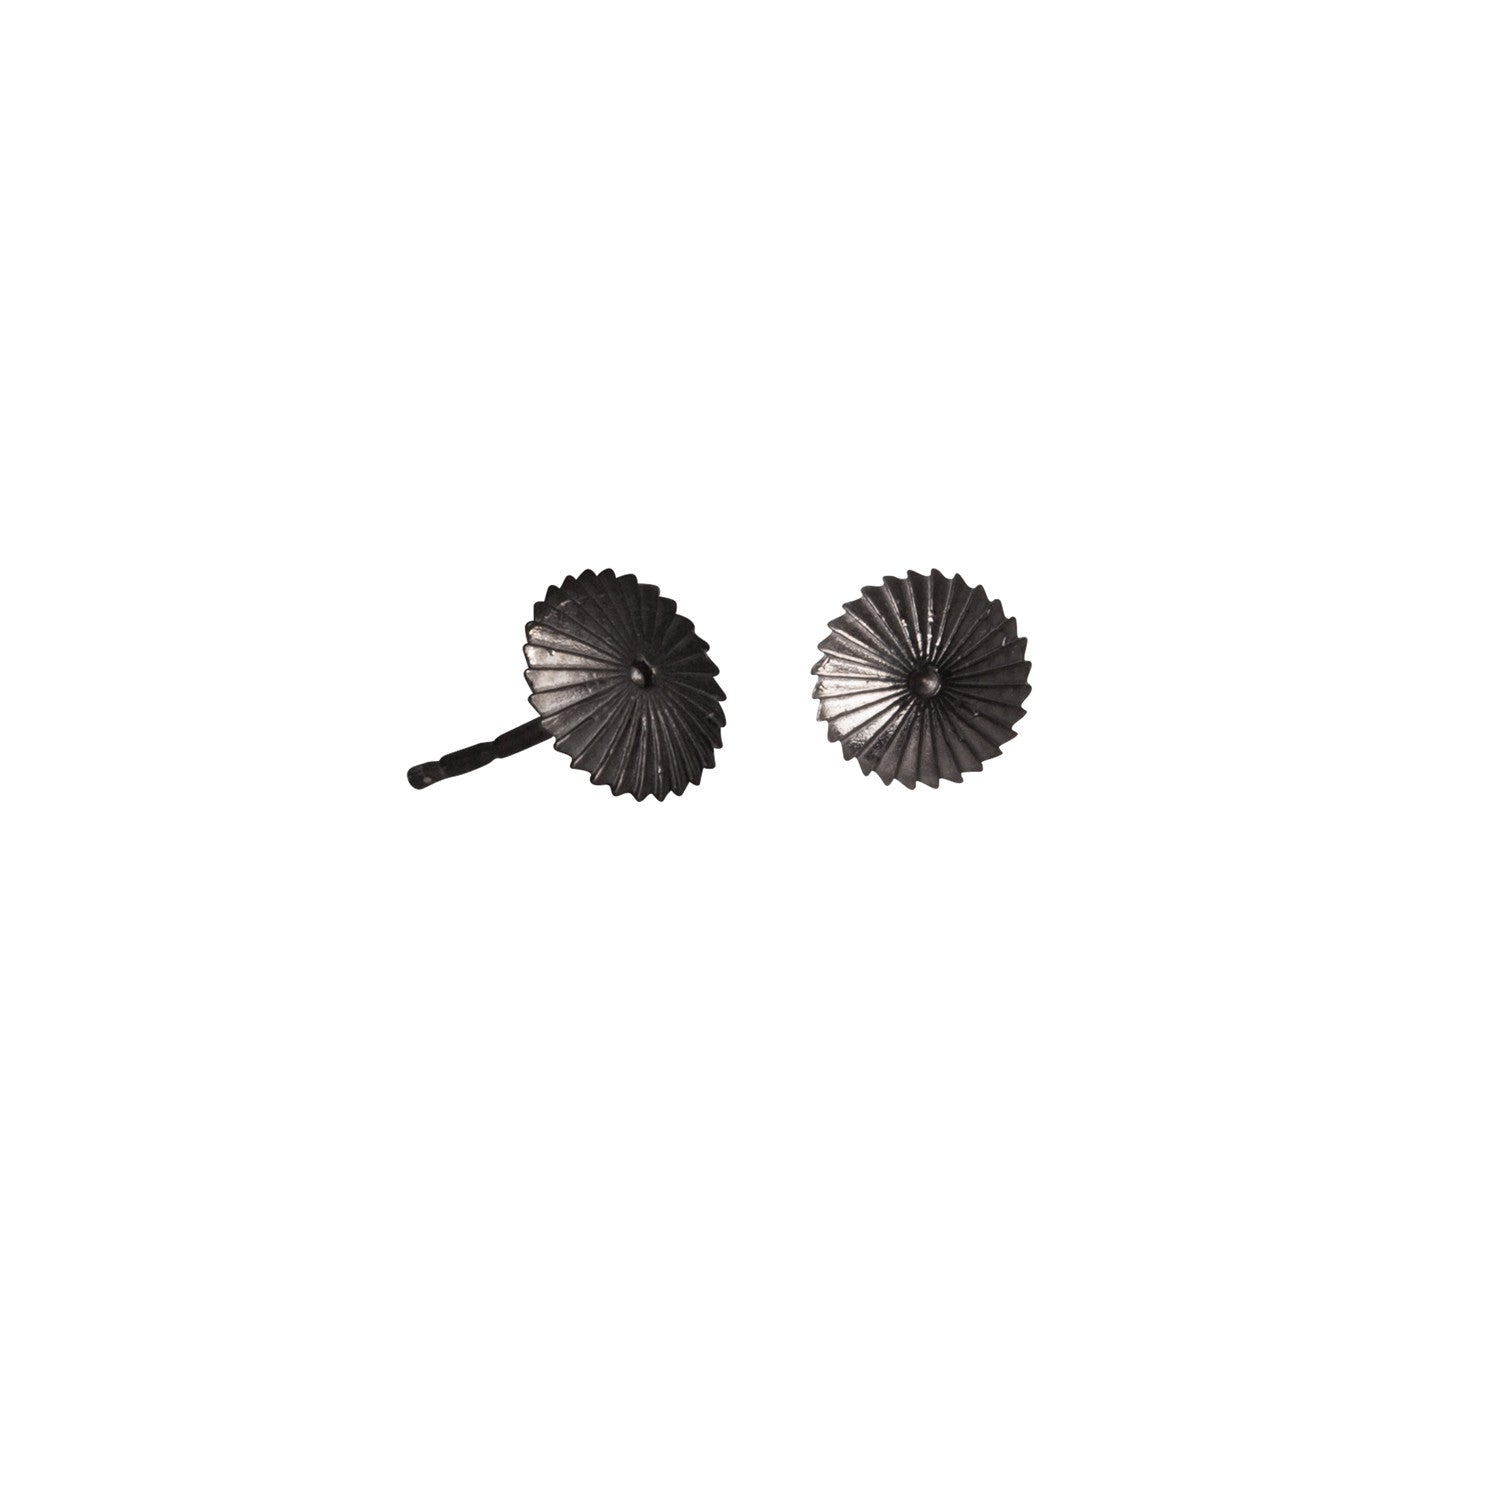 Edge Only Spiral Burr Earrings in Black Rhodium